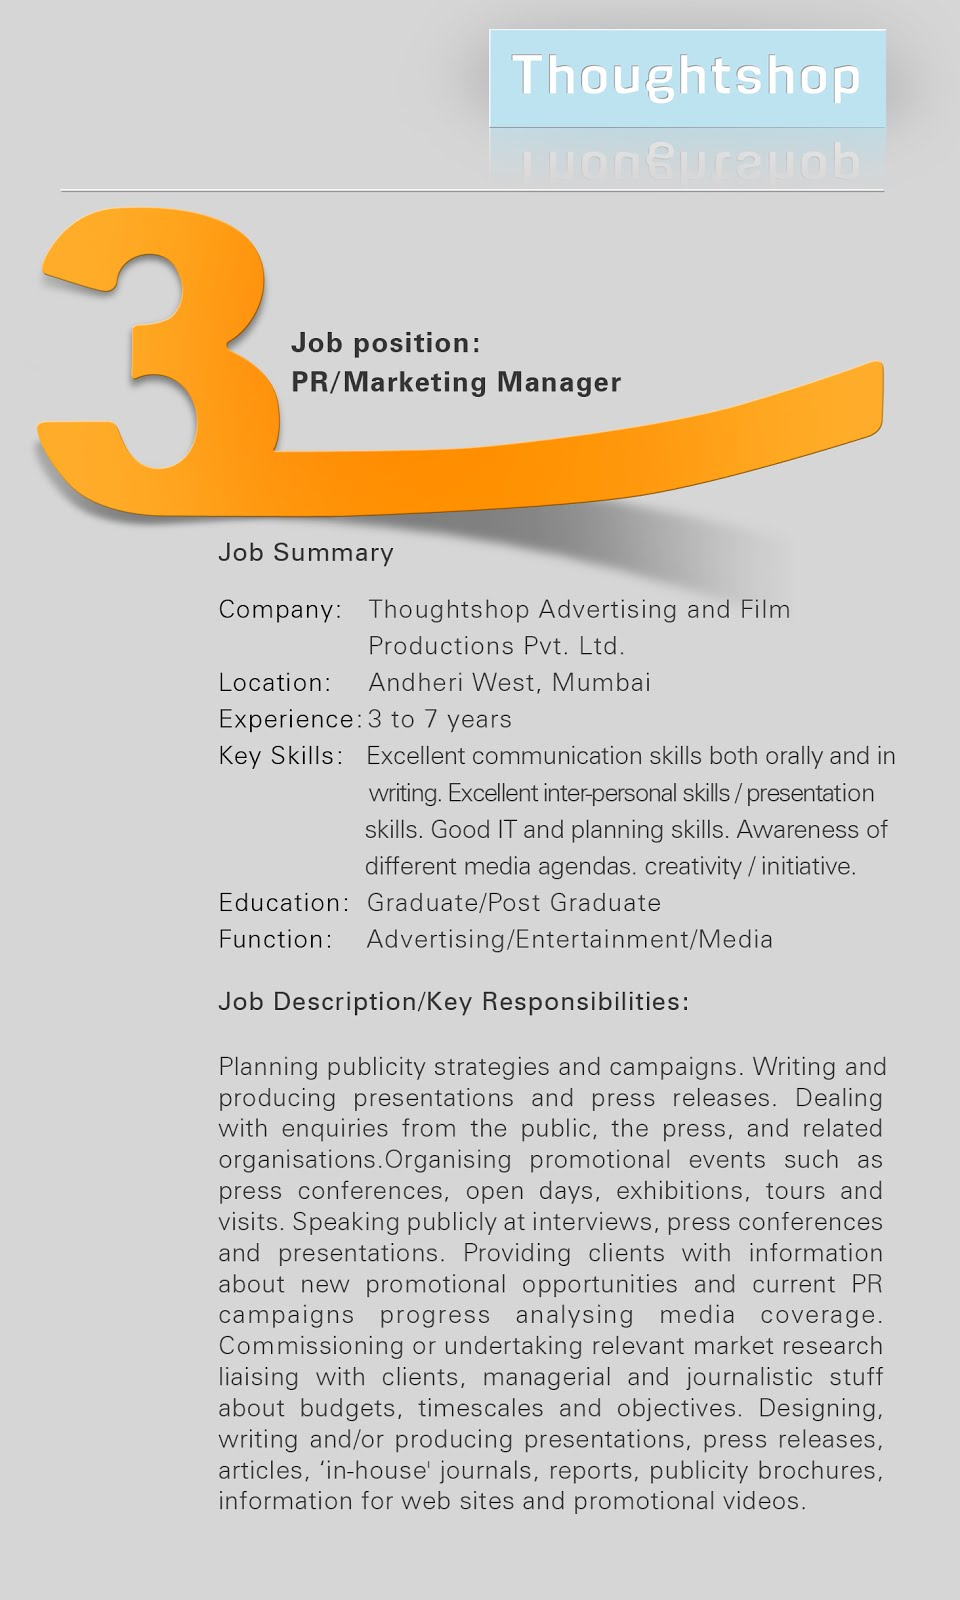 Thoughtshop Advertising U0026 Film Productions PVT LTD Requires In Mumbai. PR/  Marketing Manager